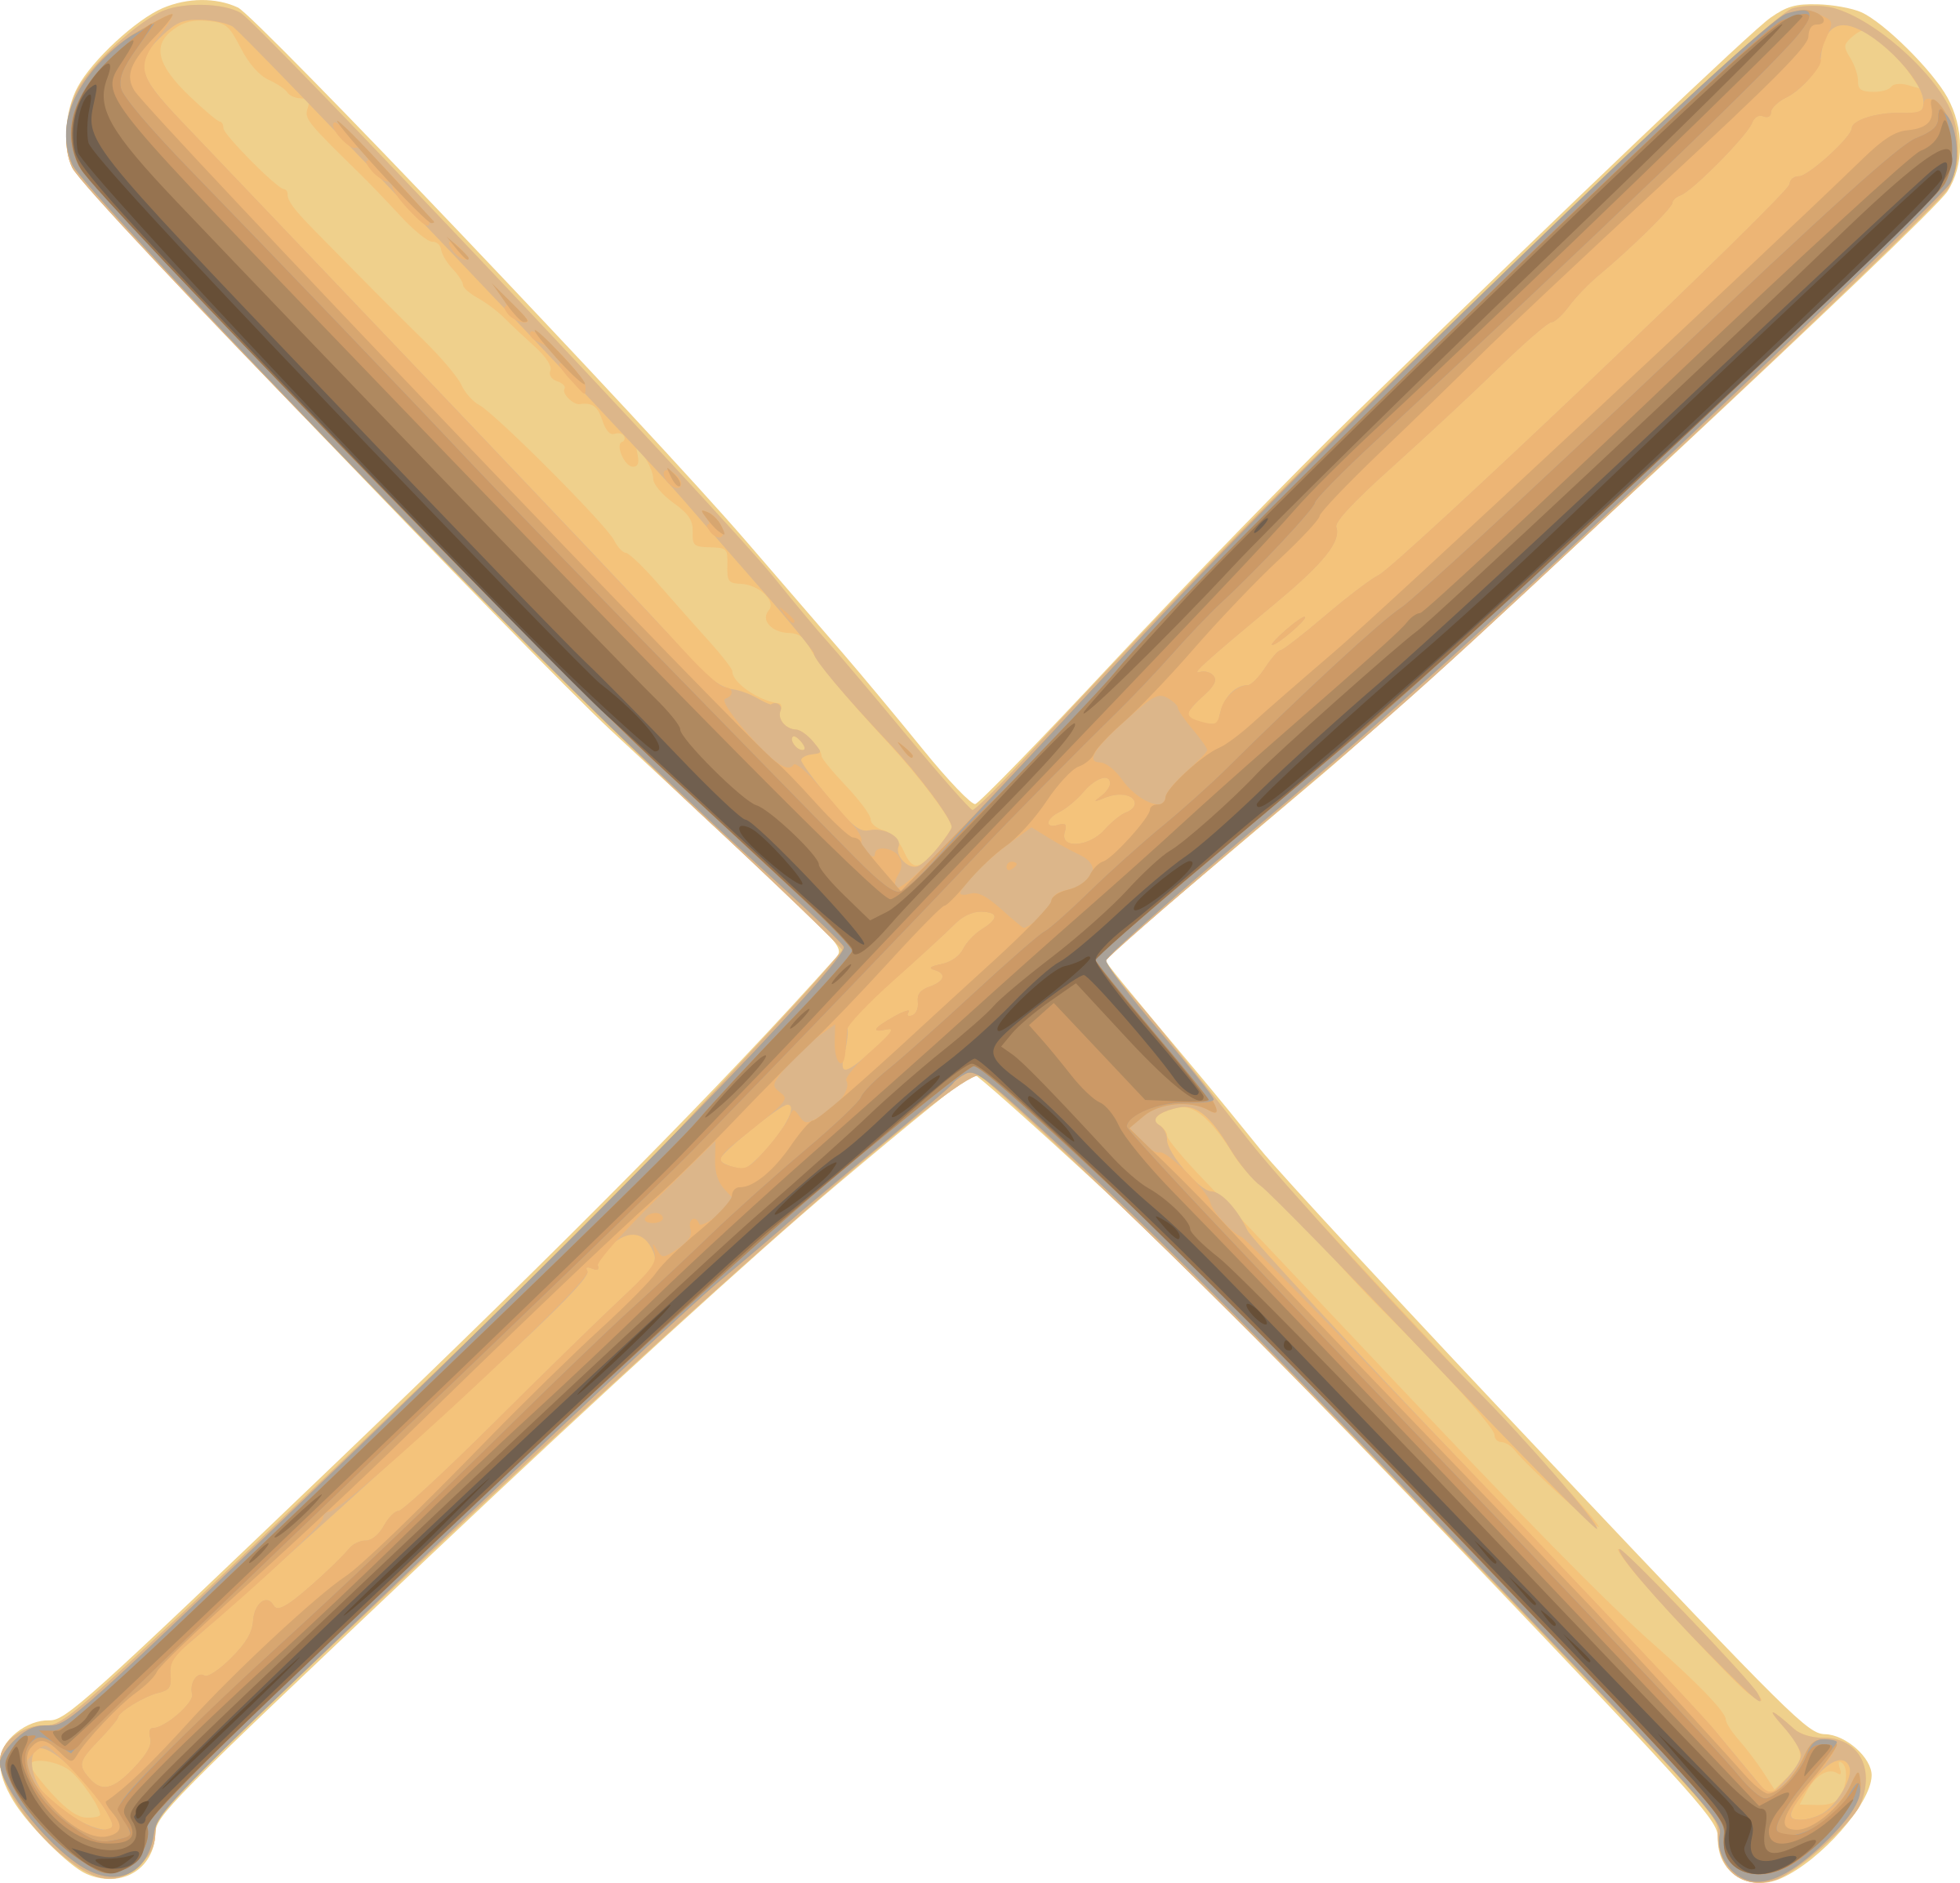 Free baseball clipart borders image free stock Baseball bat baseball crossed bats clipart - Clipartix image free stock